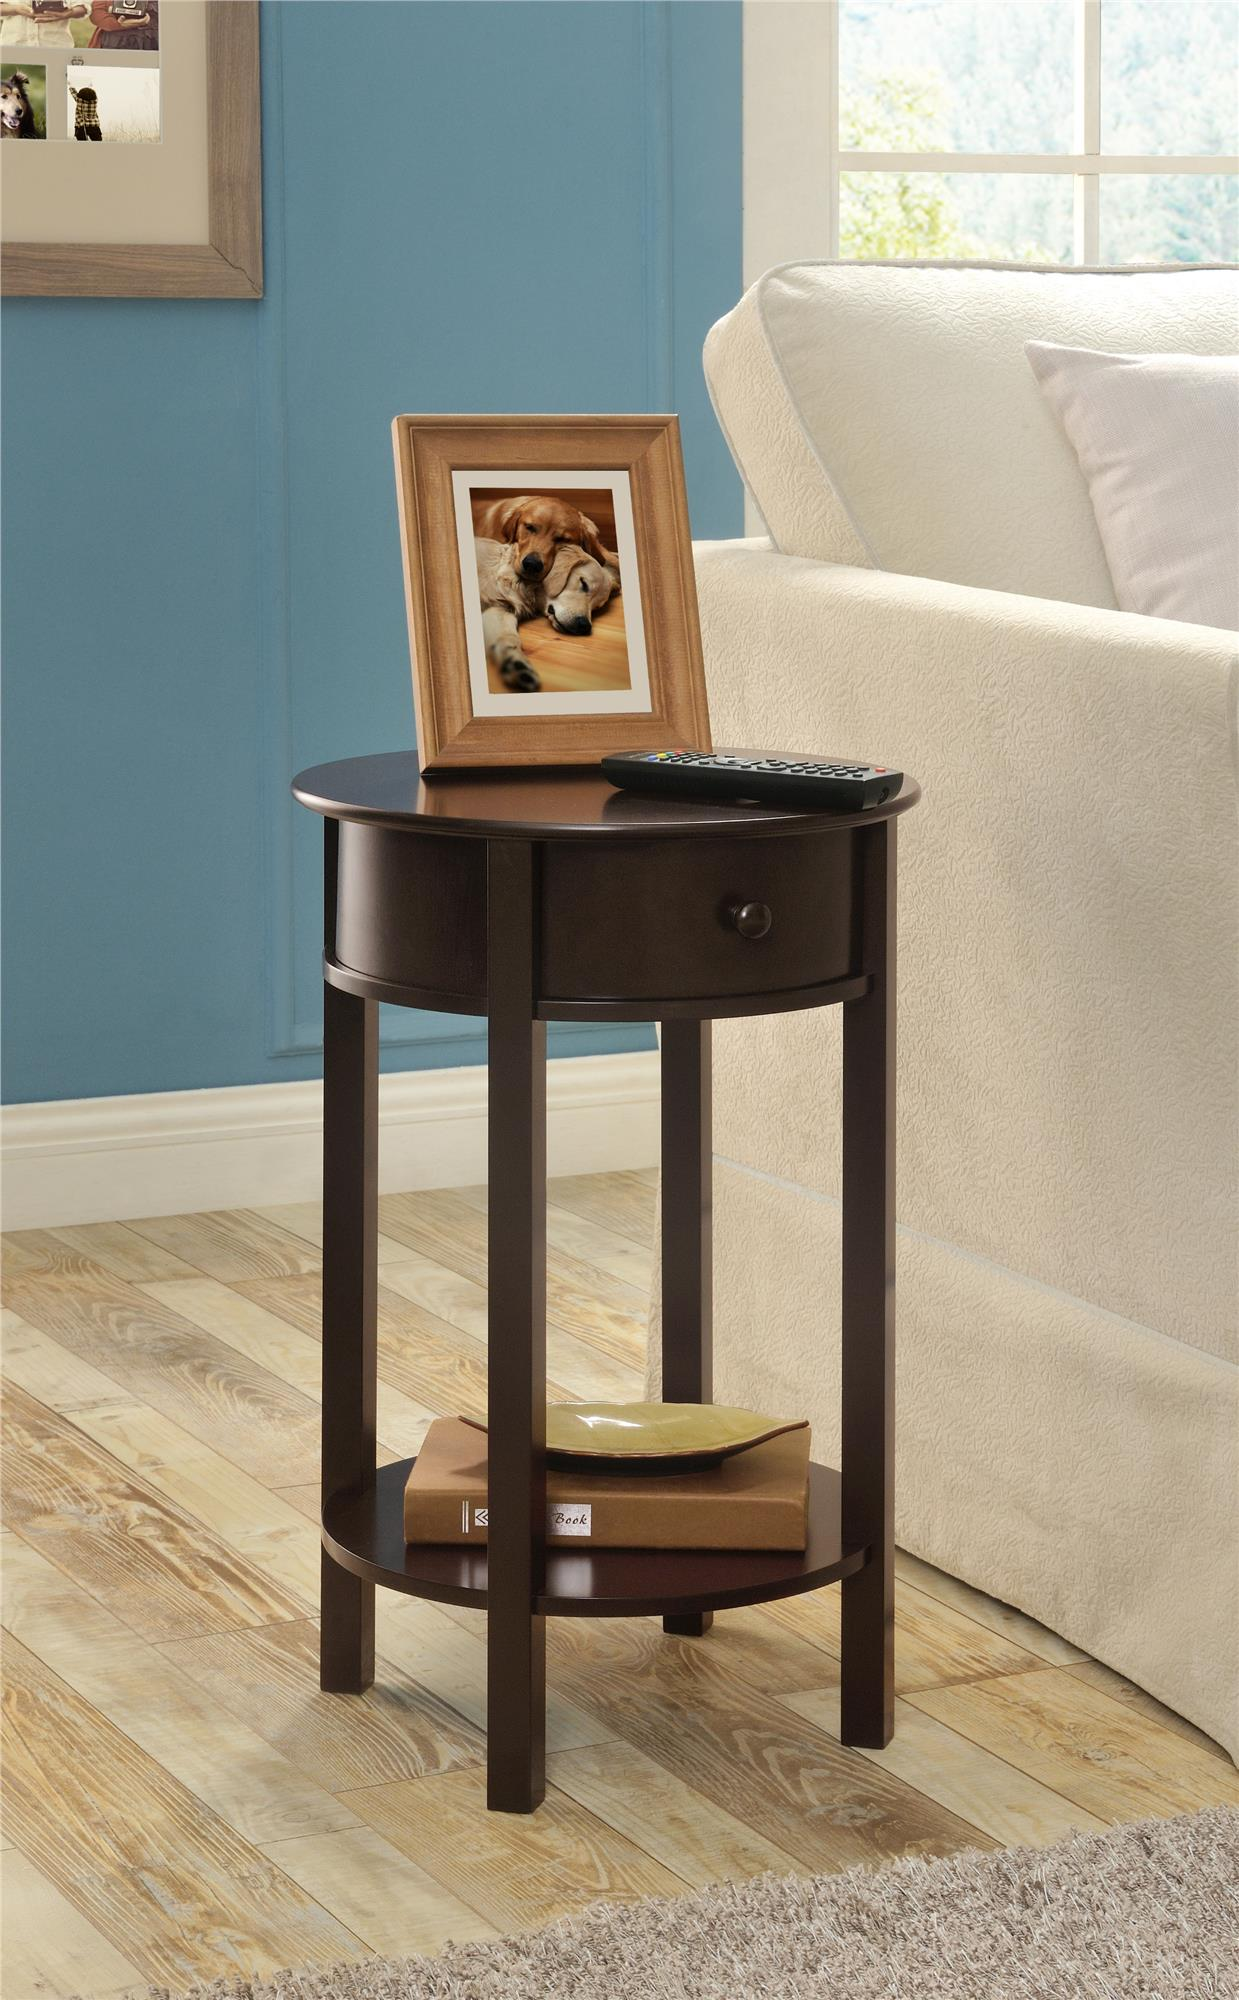 ameriwood home tipton round accent table espresso small outdoor wicker chairs garden furniture with umbrella patio lights entry way pier one imports tables butler specialty